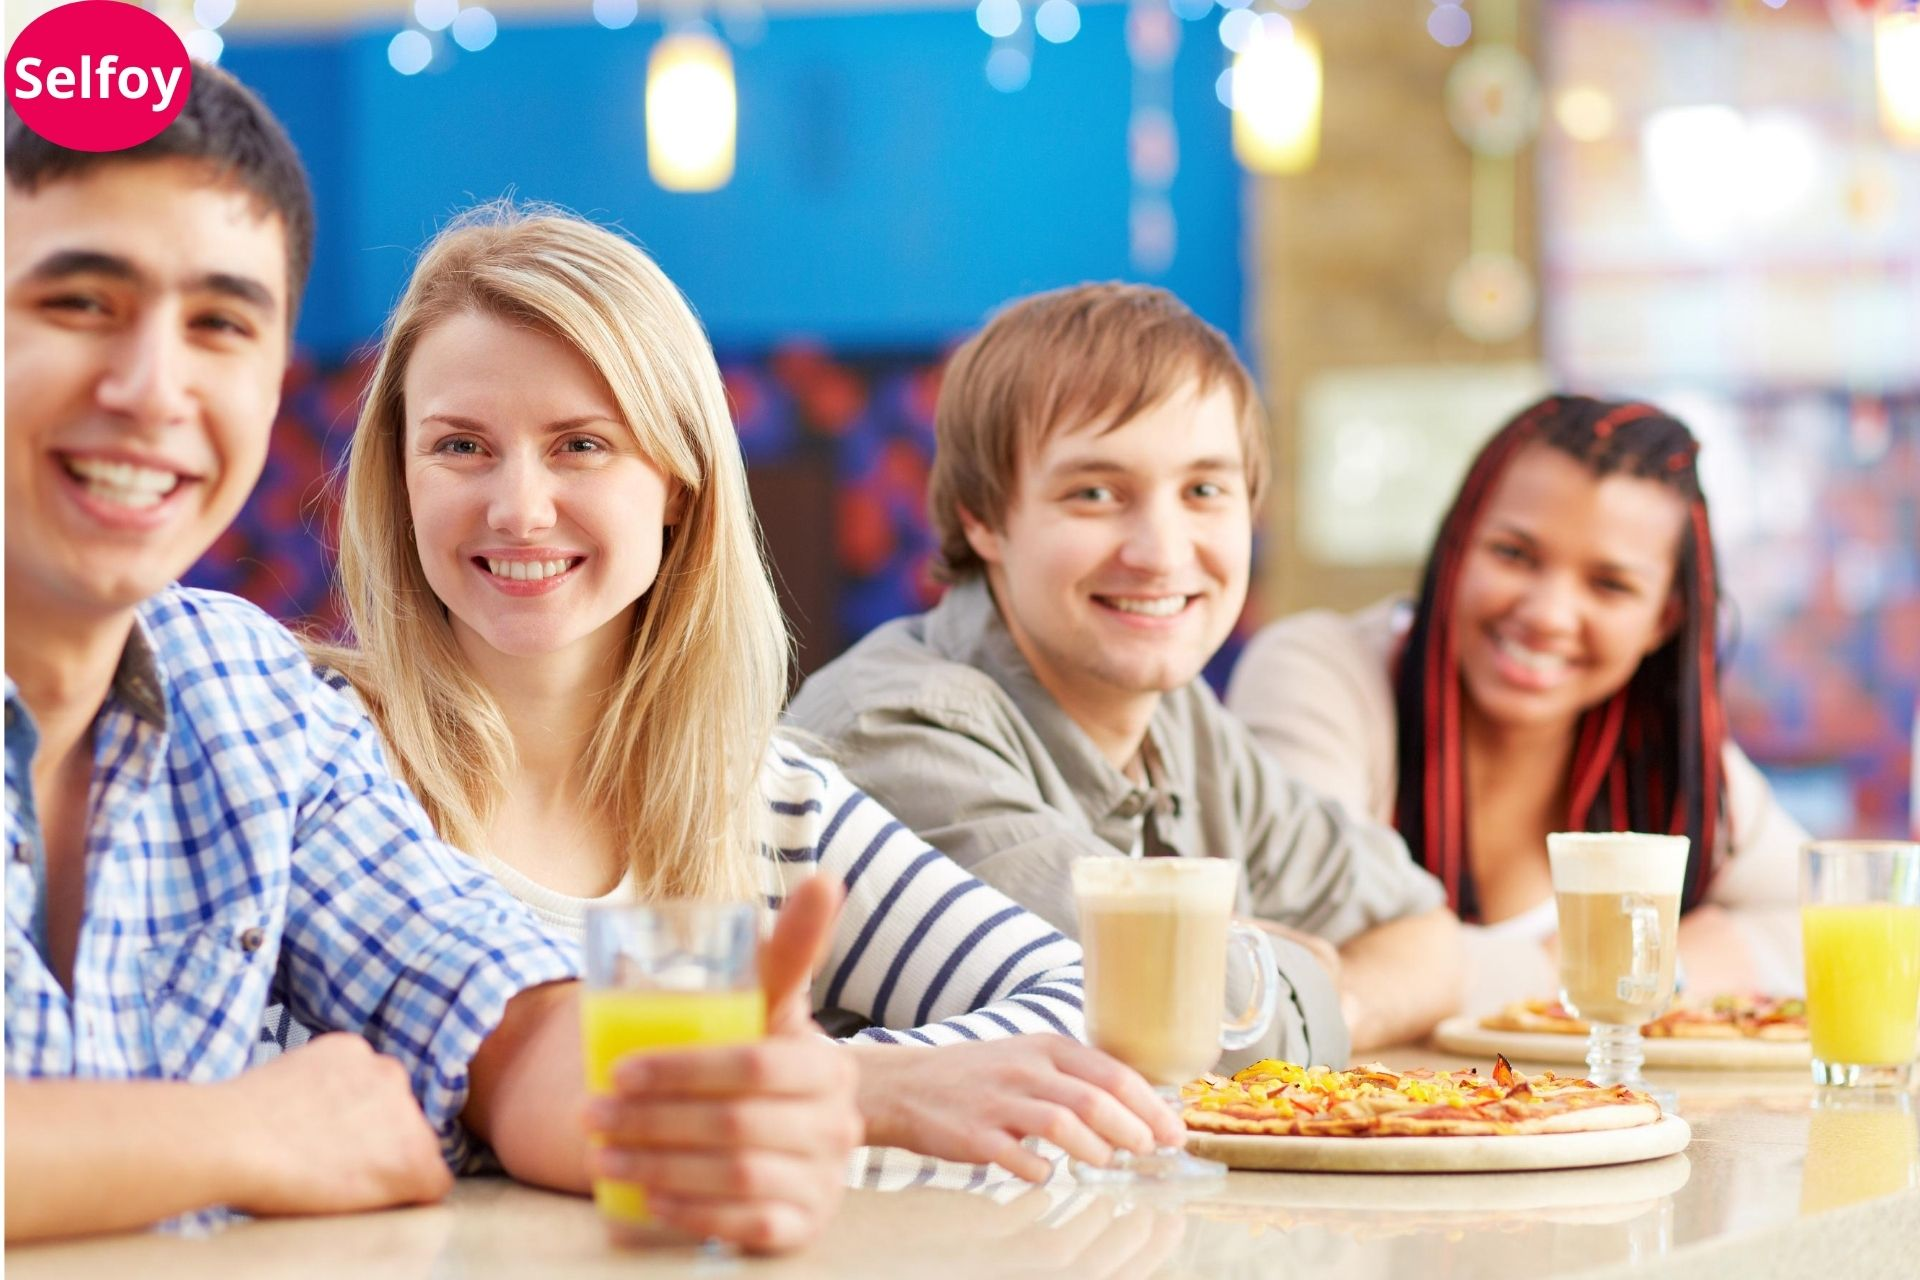 Good Personal Hygiene Helps to Develop Positive Self Esteem, two girls and two boys have a drink and pizza on their table and all are smiling